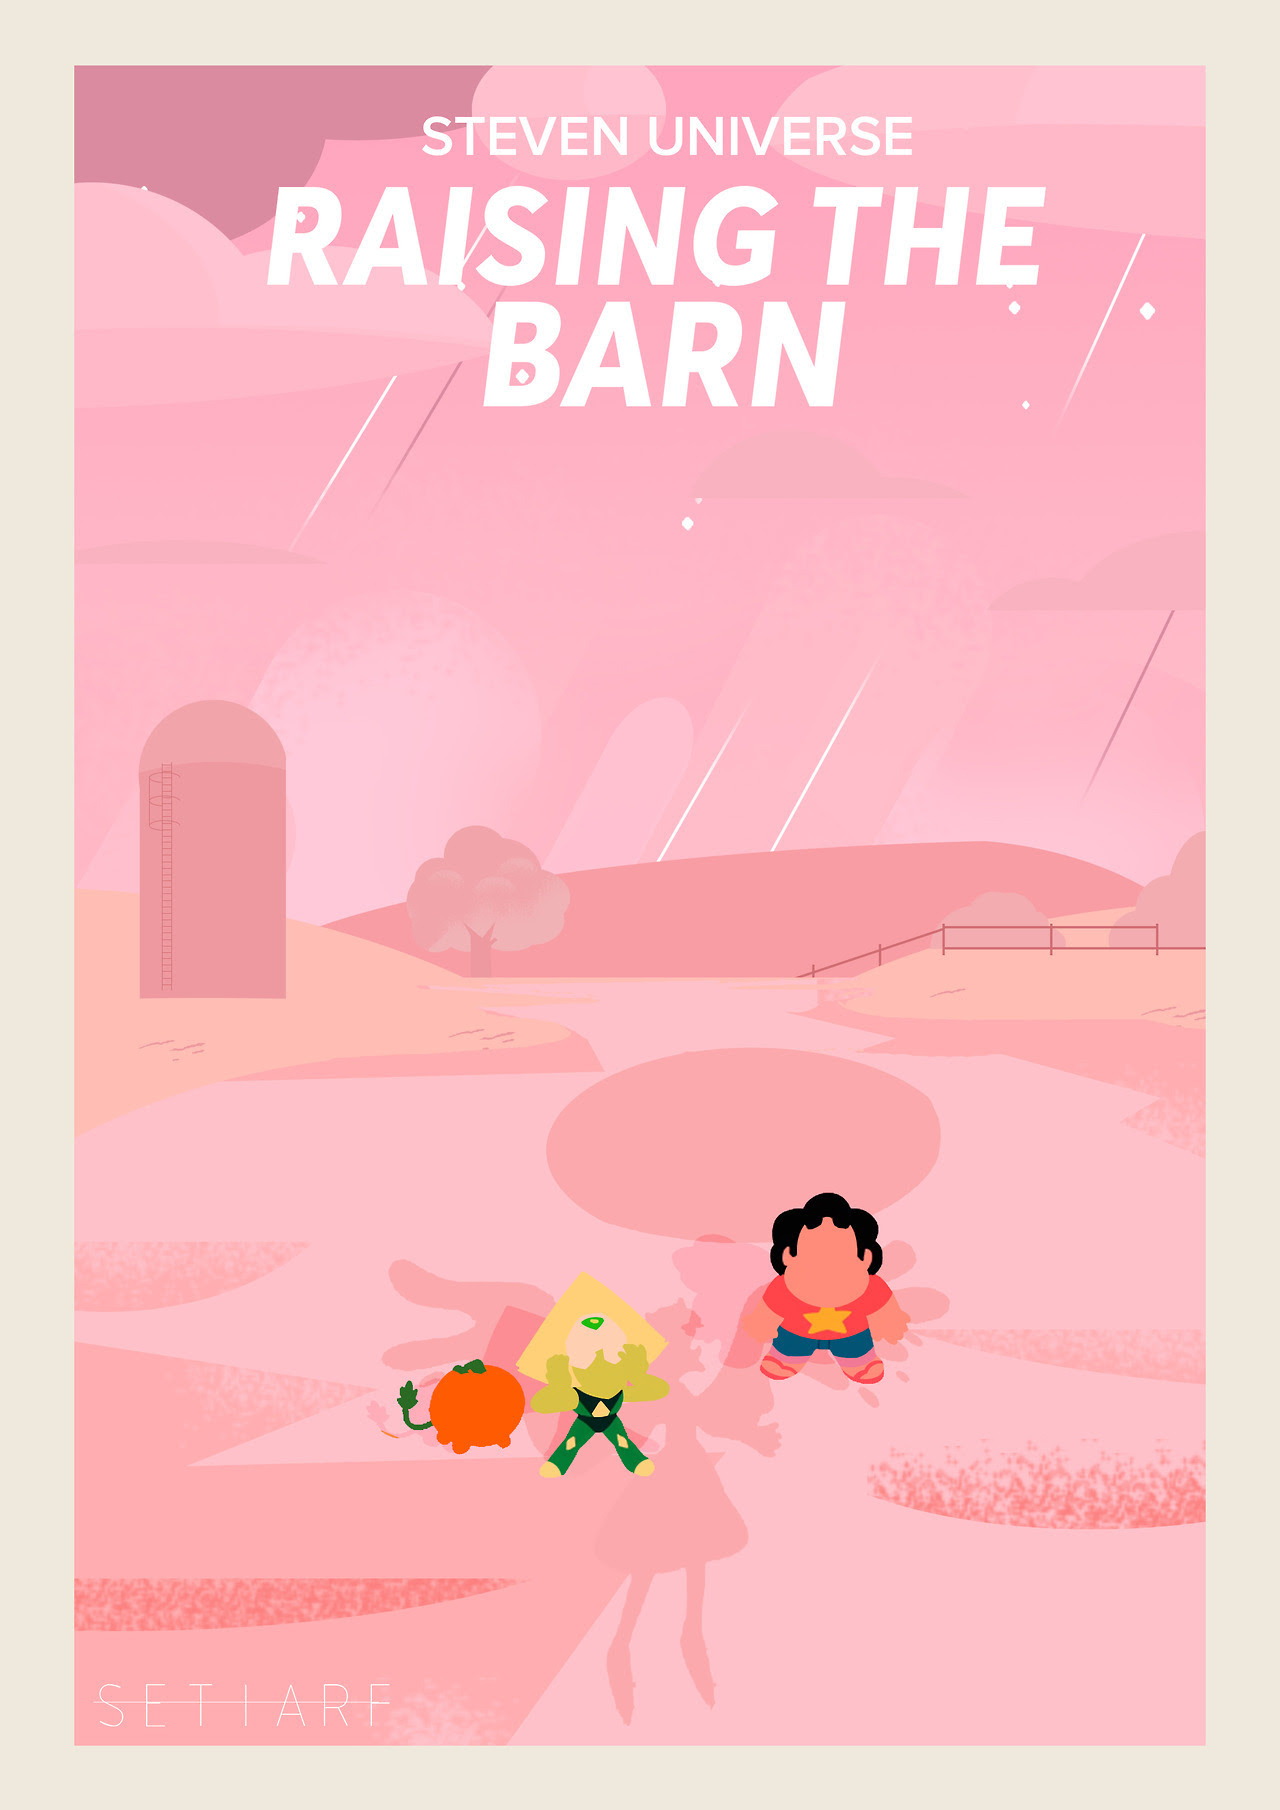 I was really excited to do this! So, this fanart is a poster that I made for Steven Universe's episode: Raising the Barn. <3